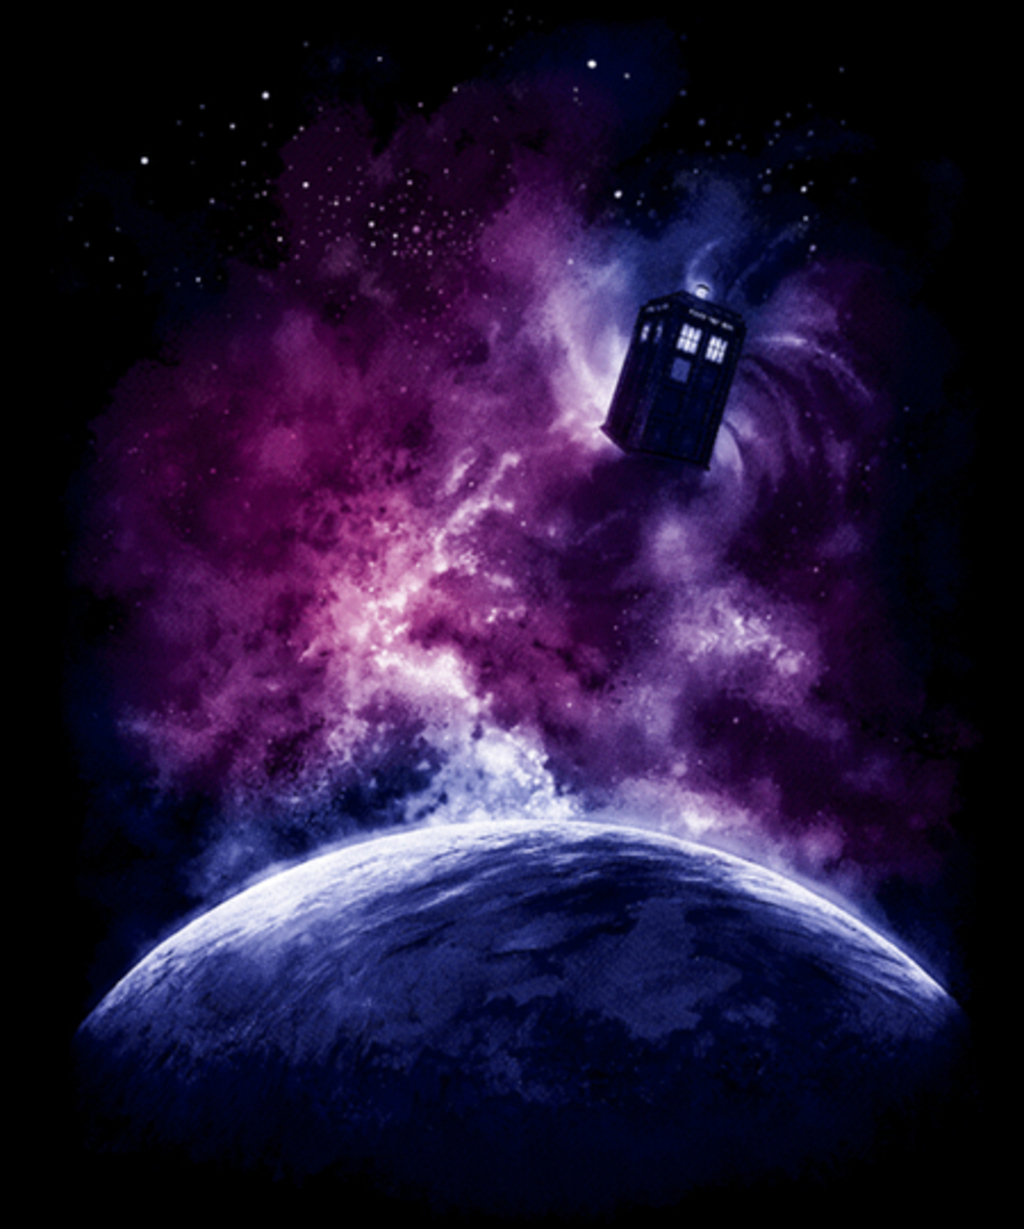 Qwertee: Space and Time